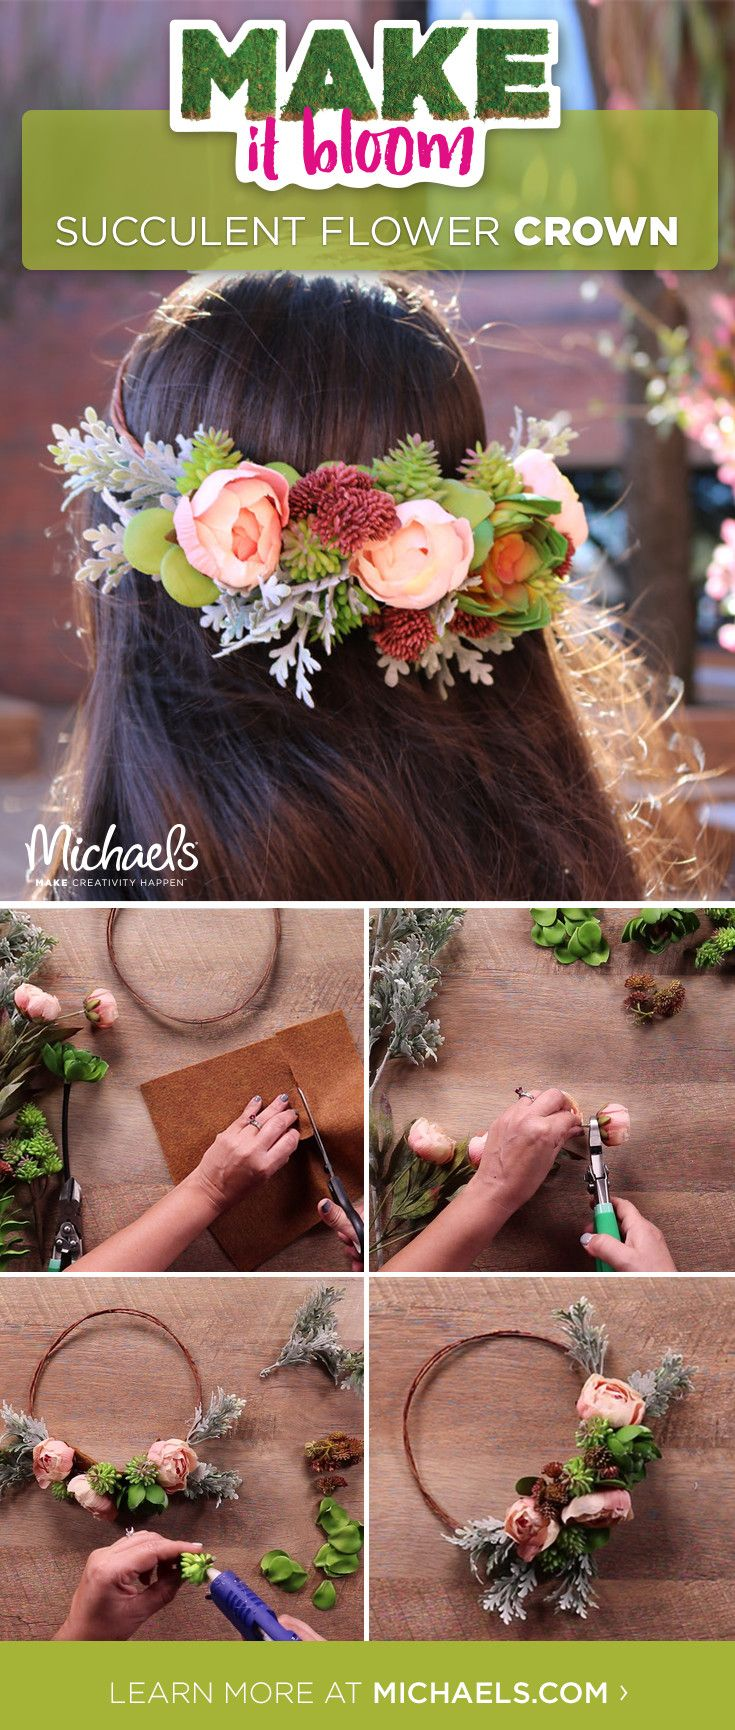 Get festival ready with this beautiful (and easy to-do) Succulent Flower Crown! Follow this simple how-to and unleash your inner-flower child.